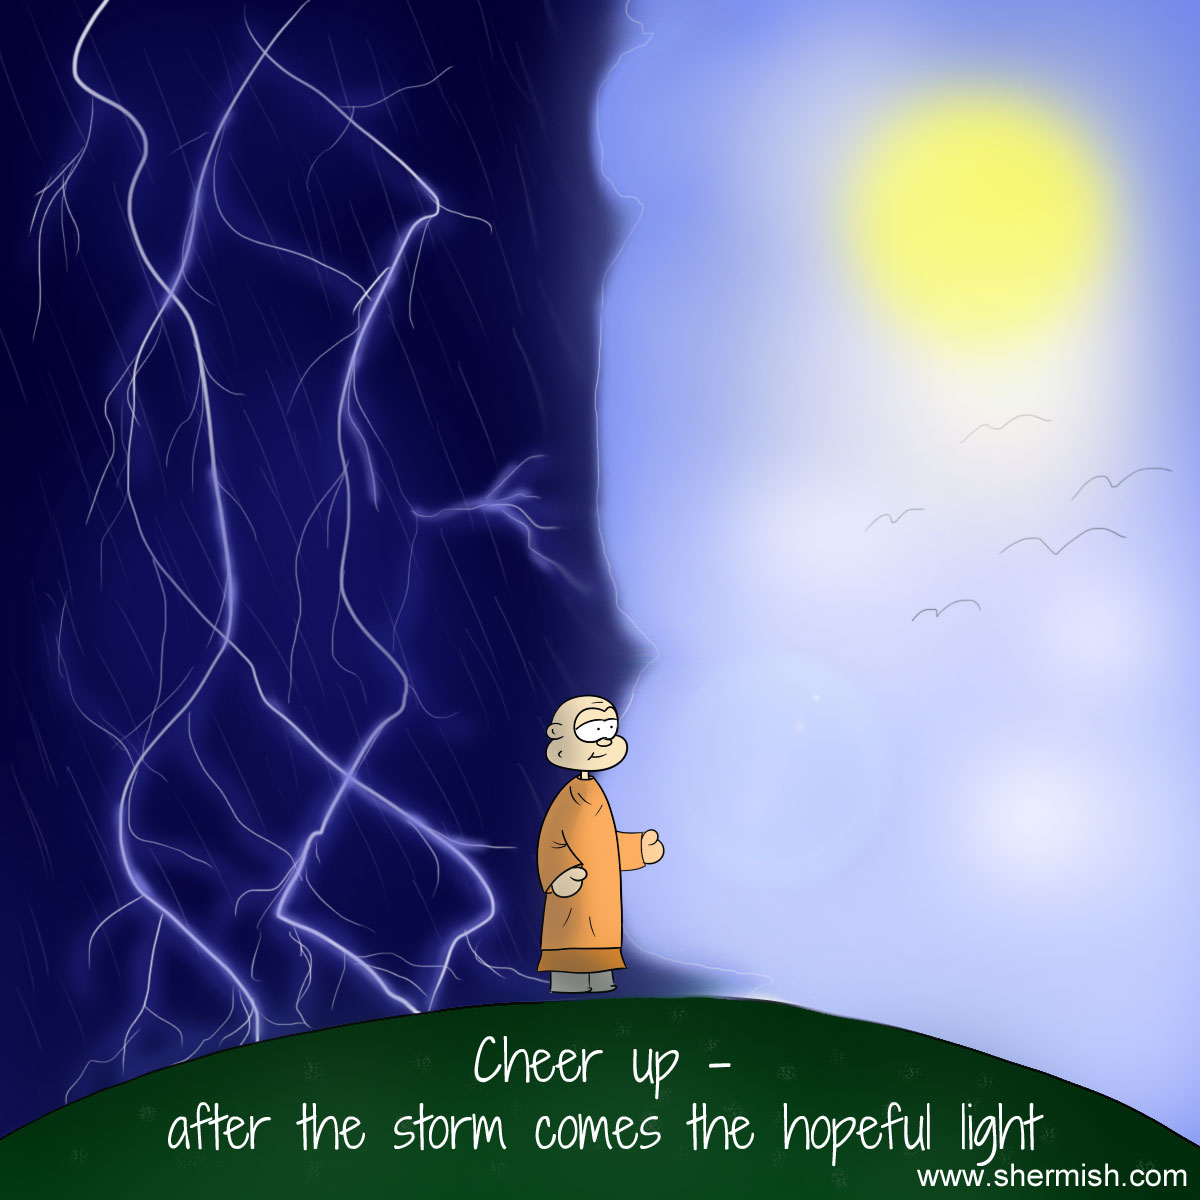 Monktales: Cheer up - no storm is endless - go your way